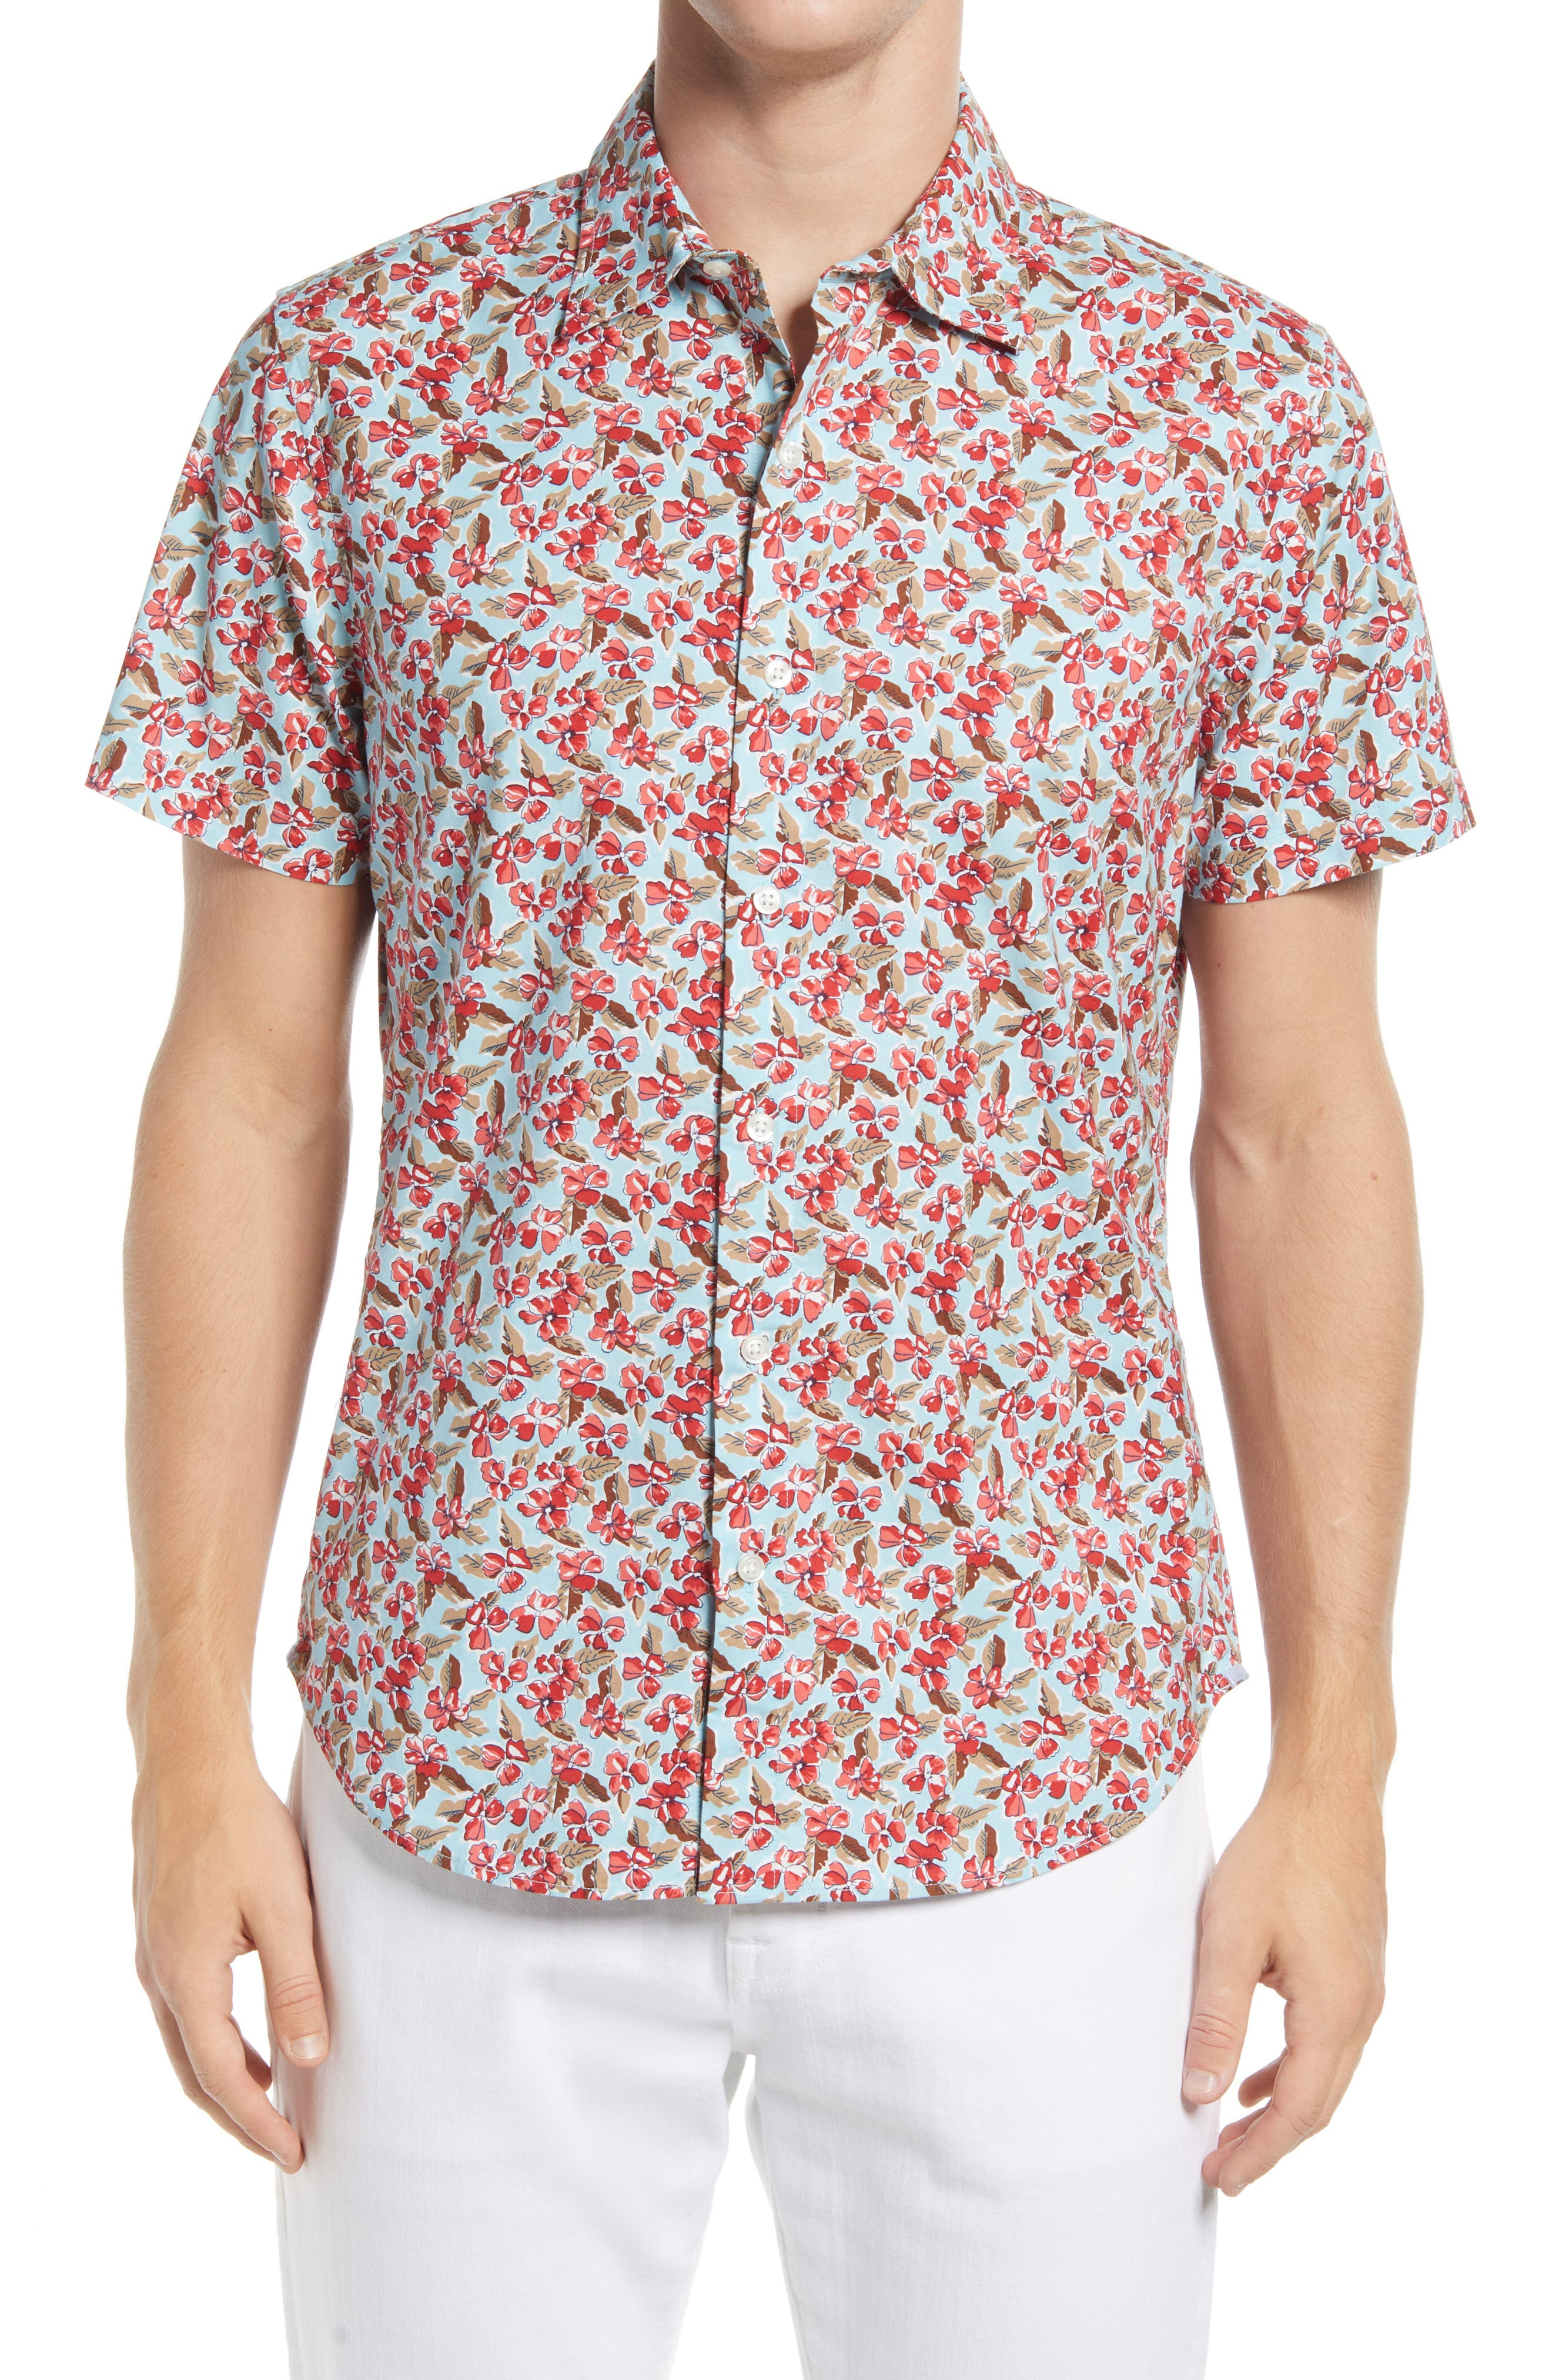 Riviera Slim Fit Floral Short Sleeve Stretch Button-Up Shirt